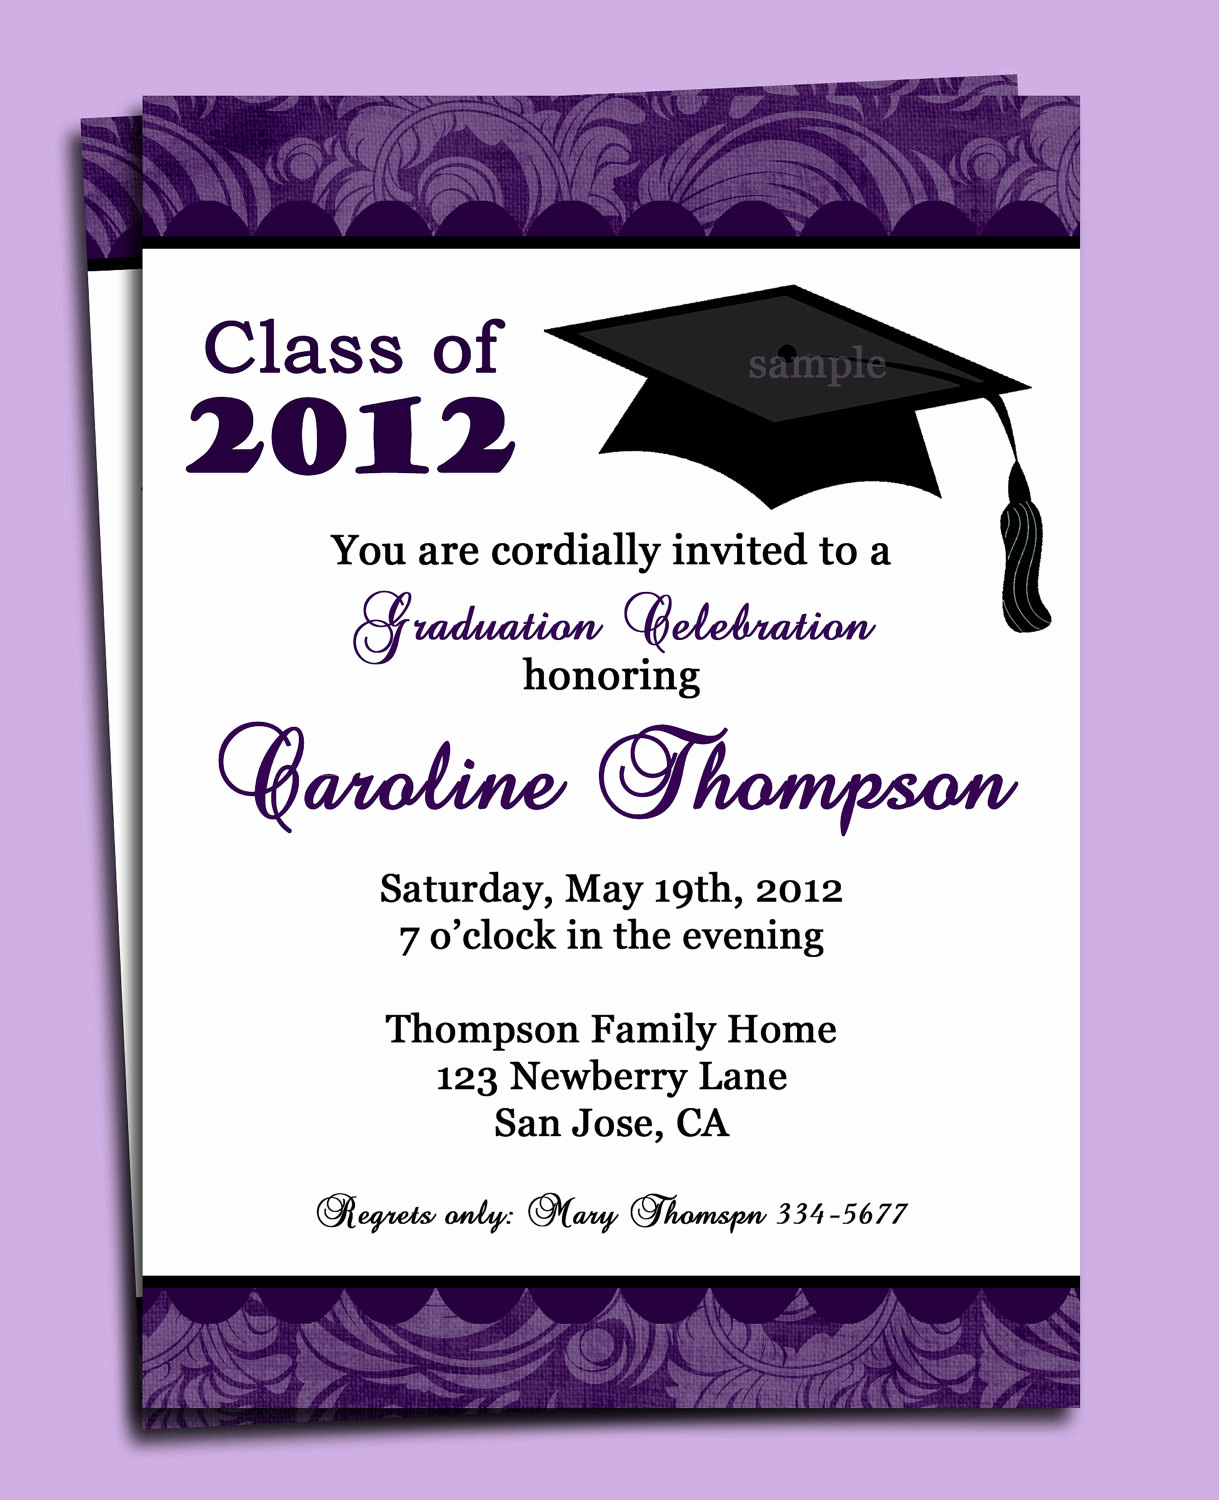 Graduation Invitation Cards Samples Inspirational Graduation Party or Announcement Invitation Printable or